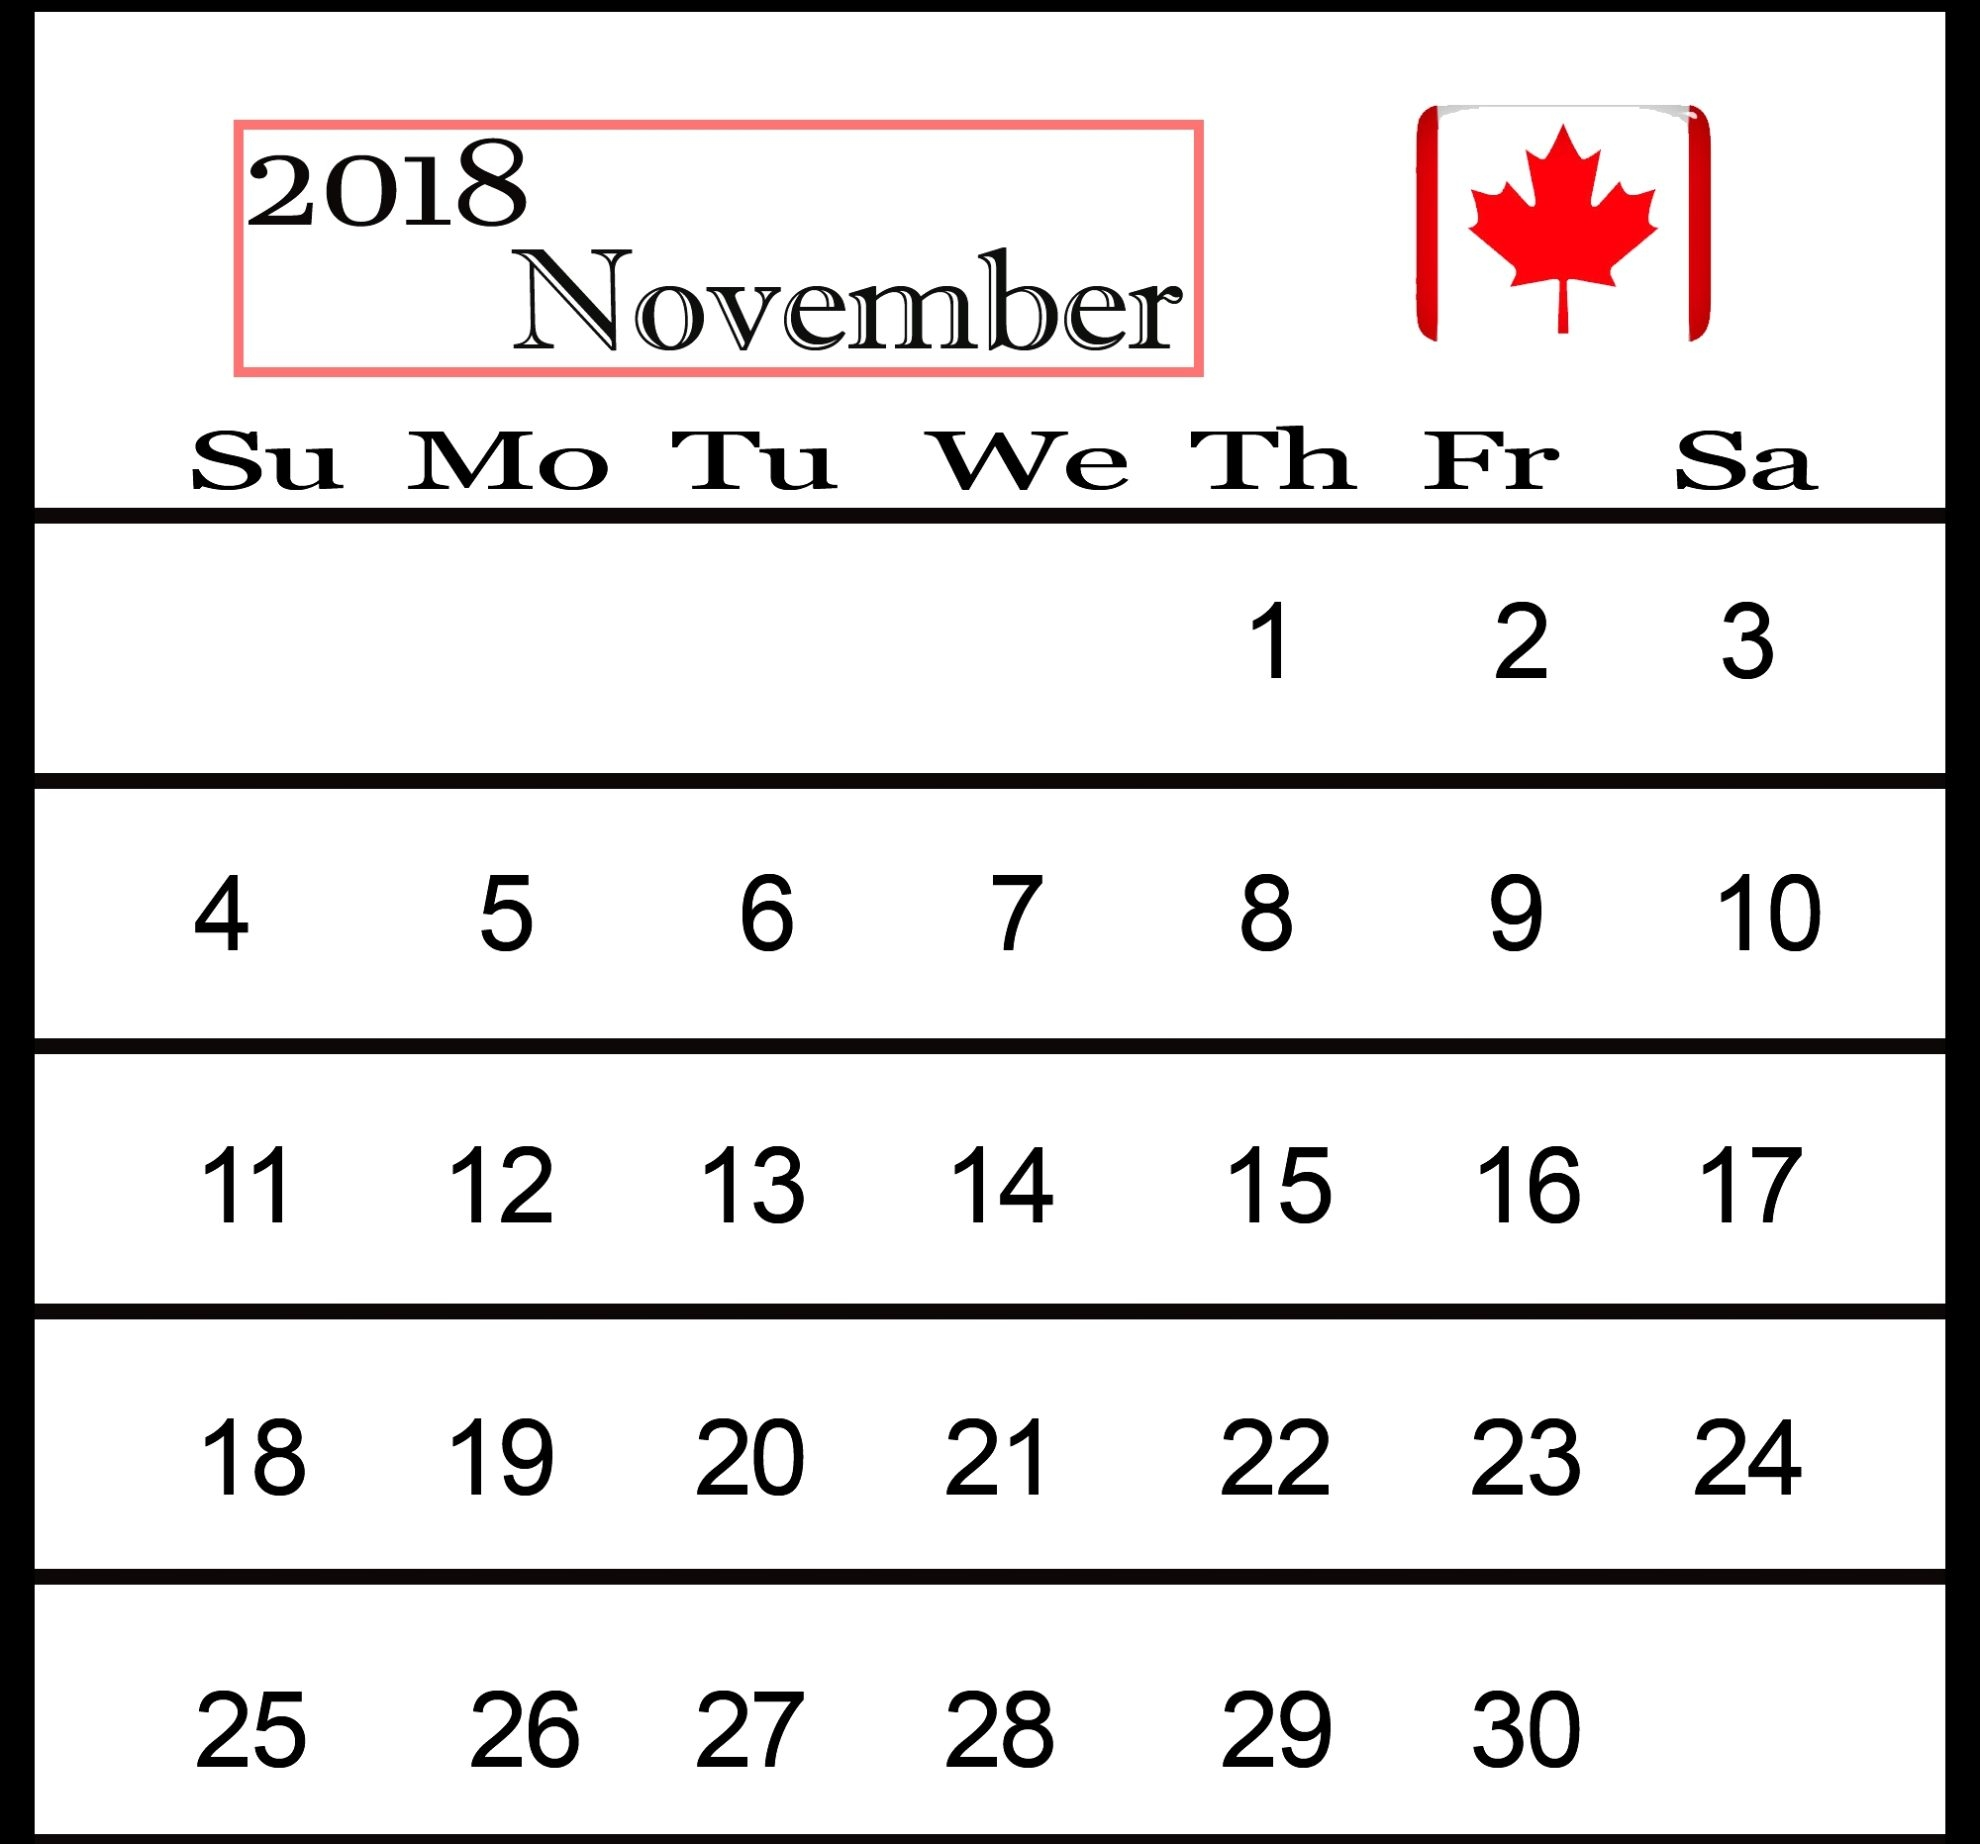 november 2018 calendar with holidays canada business calendar::November 2018 Calendar Canada